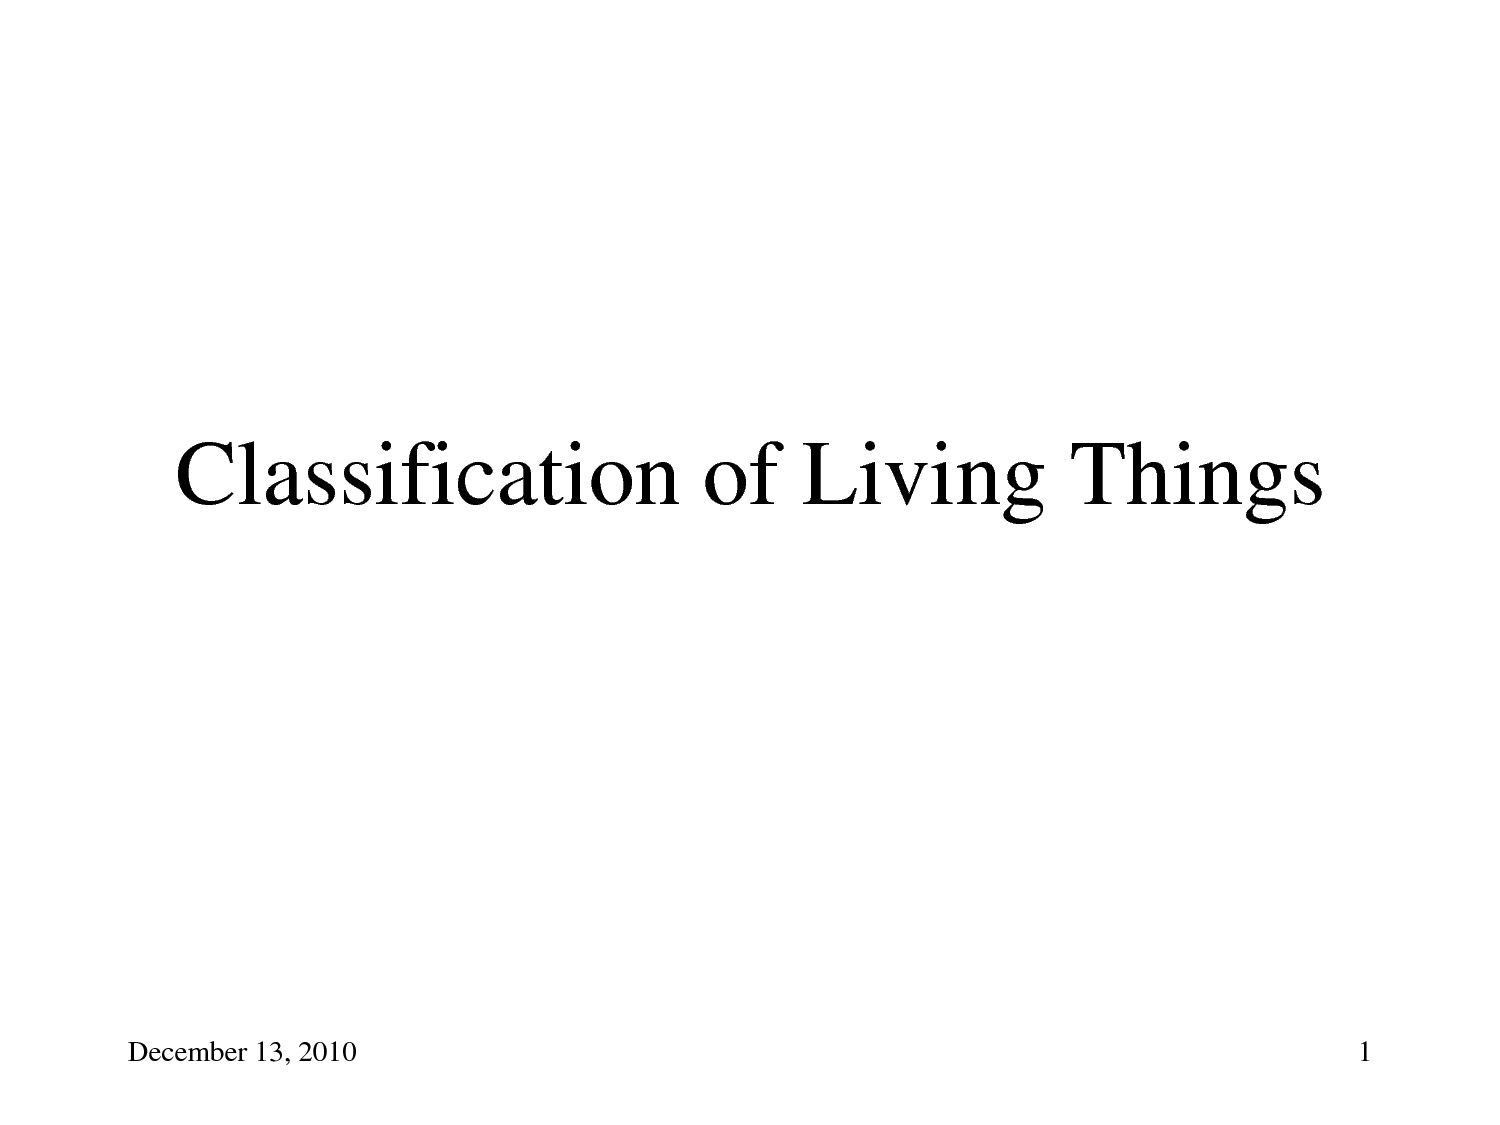 14 Best Images Of Classification Of Living Things